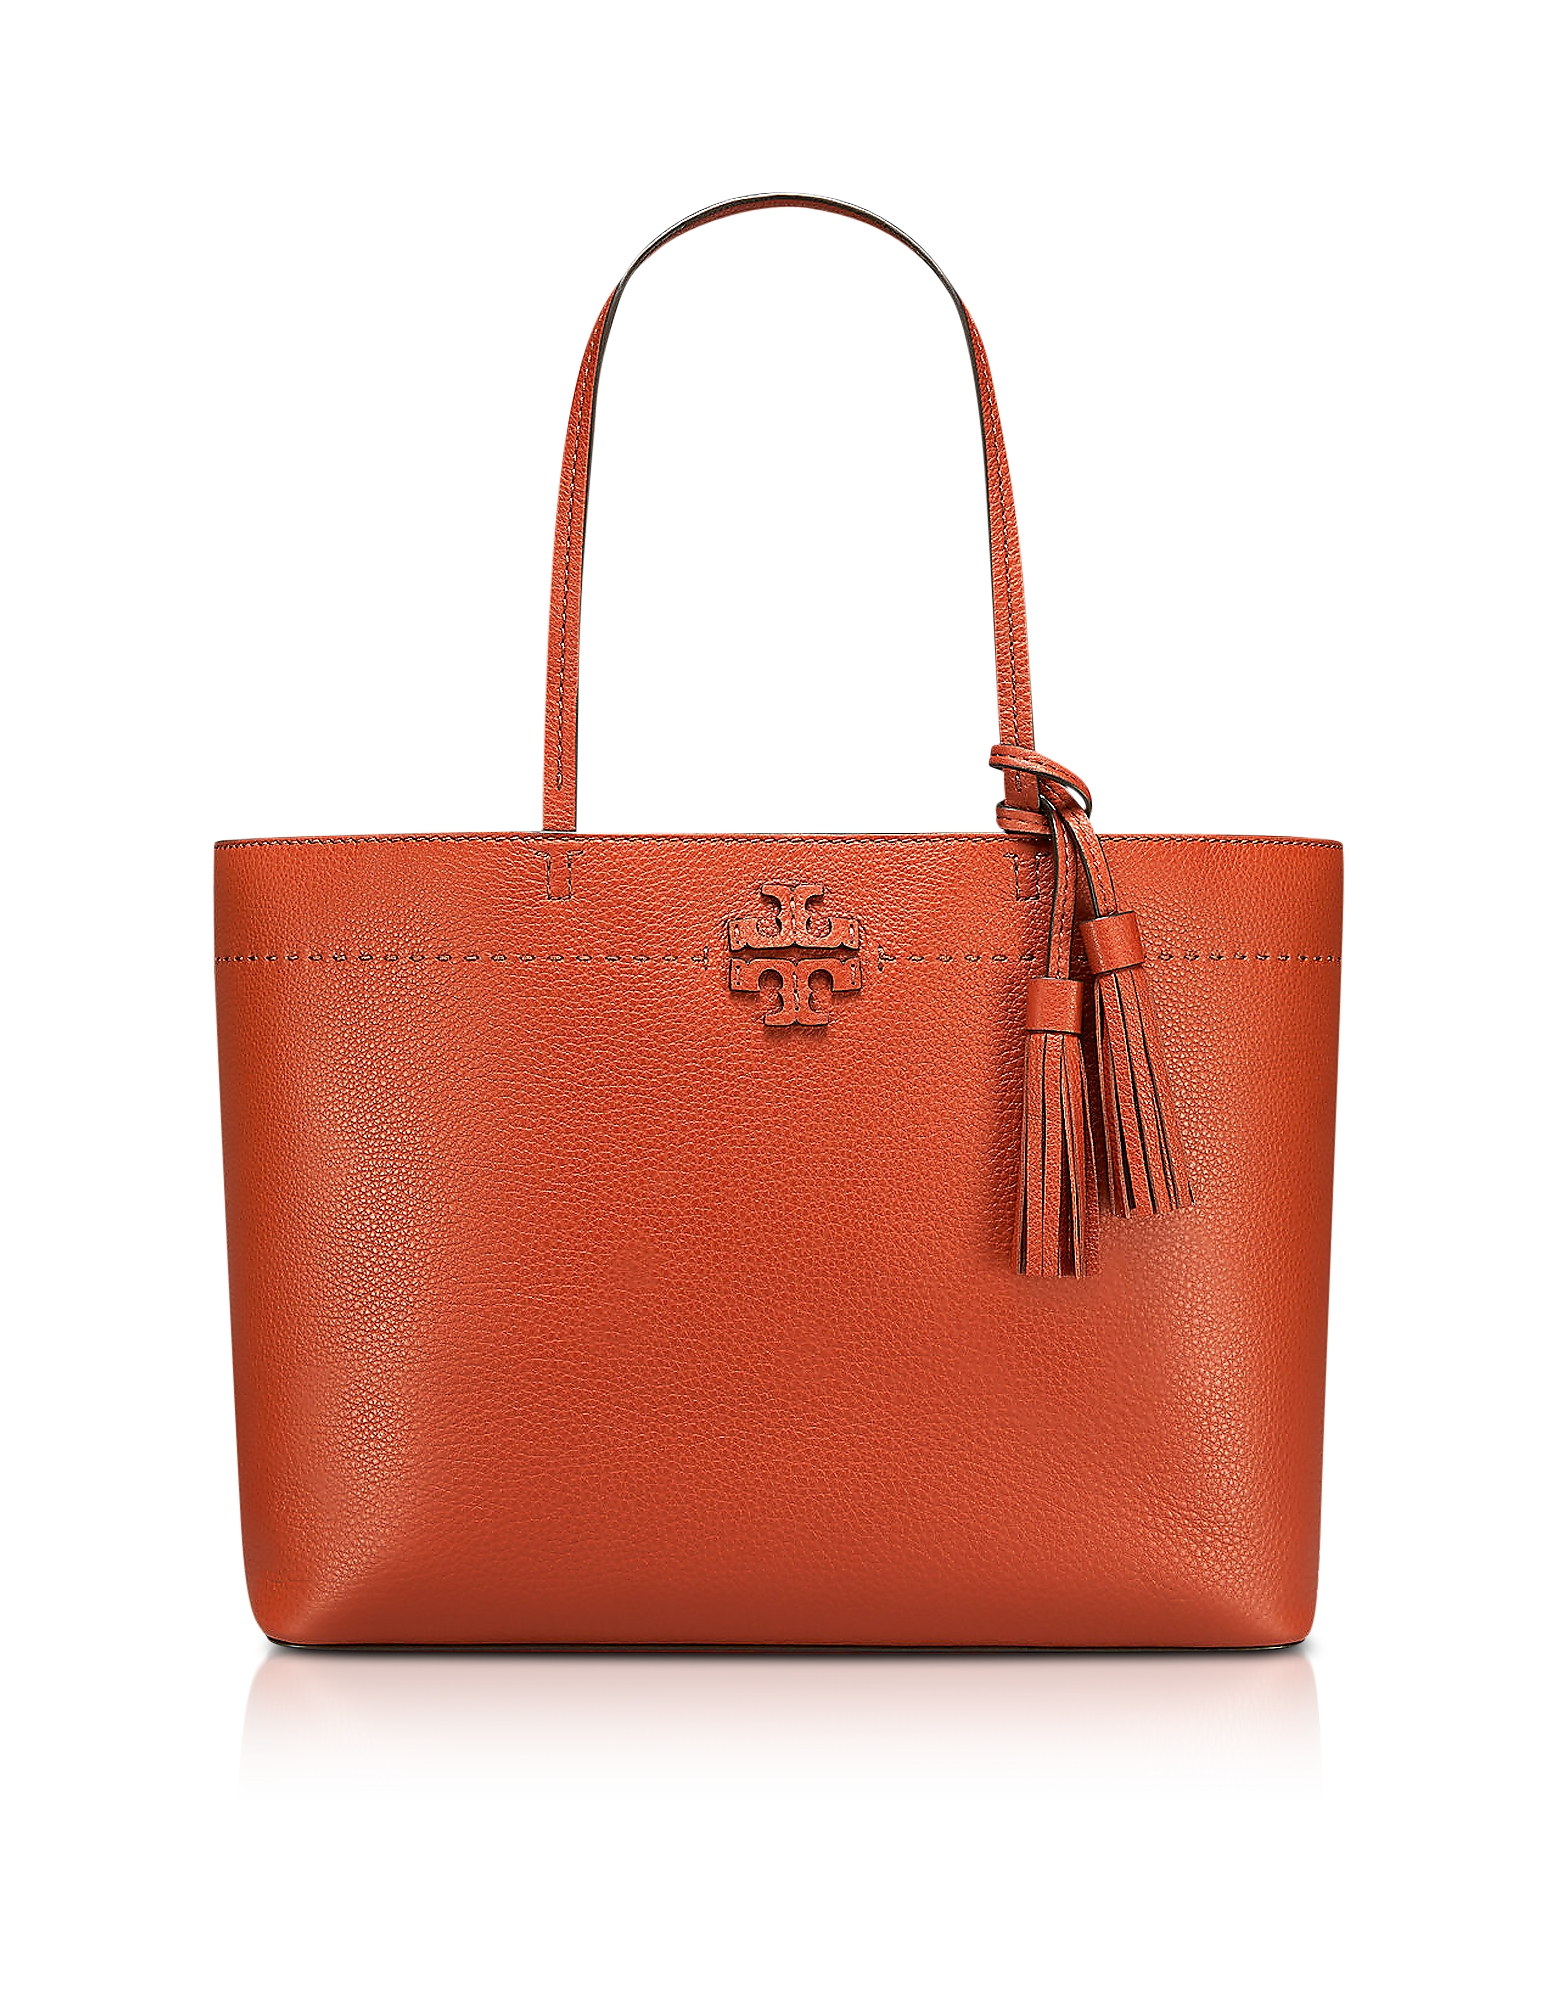 MCGRAW DESERT SPICE TEXTURED LEATHER TOTE BAG